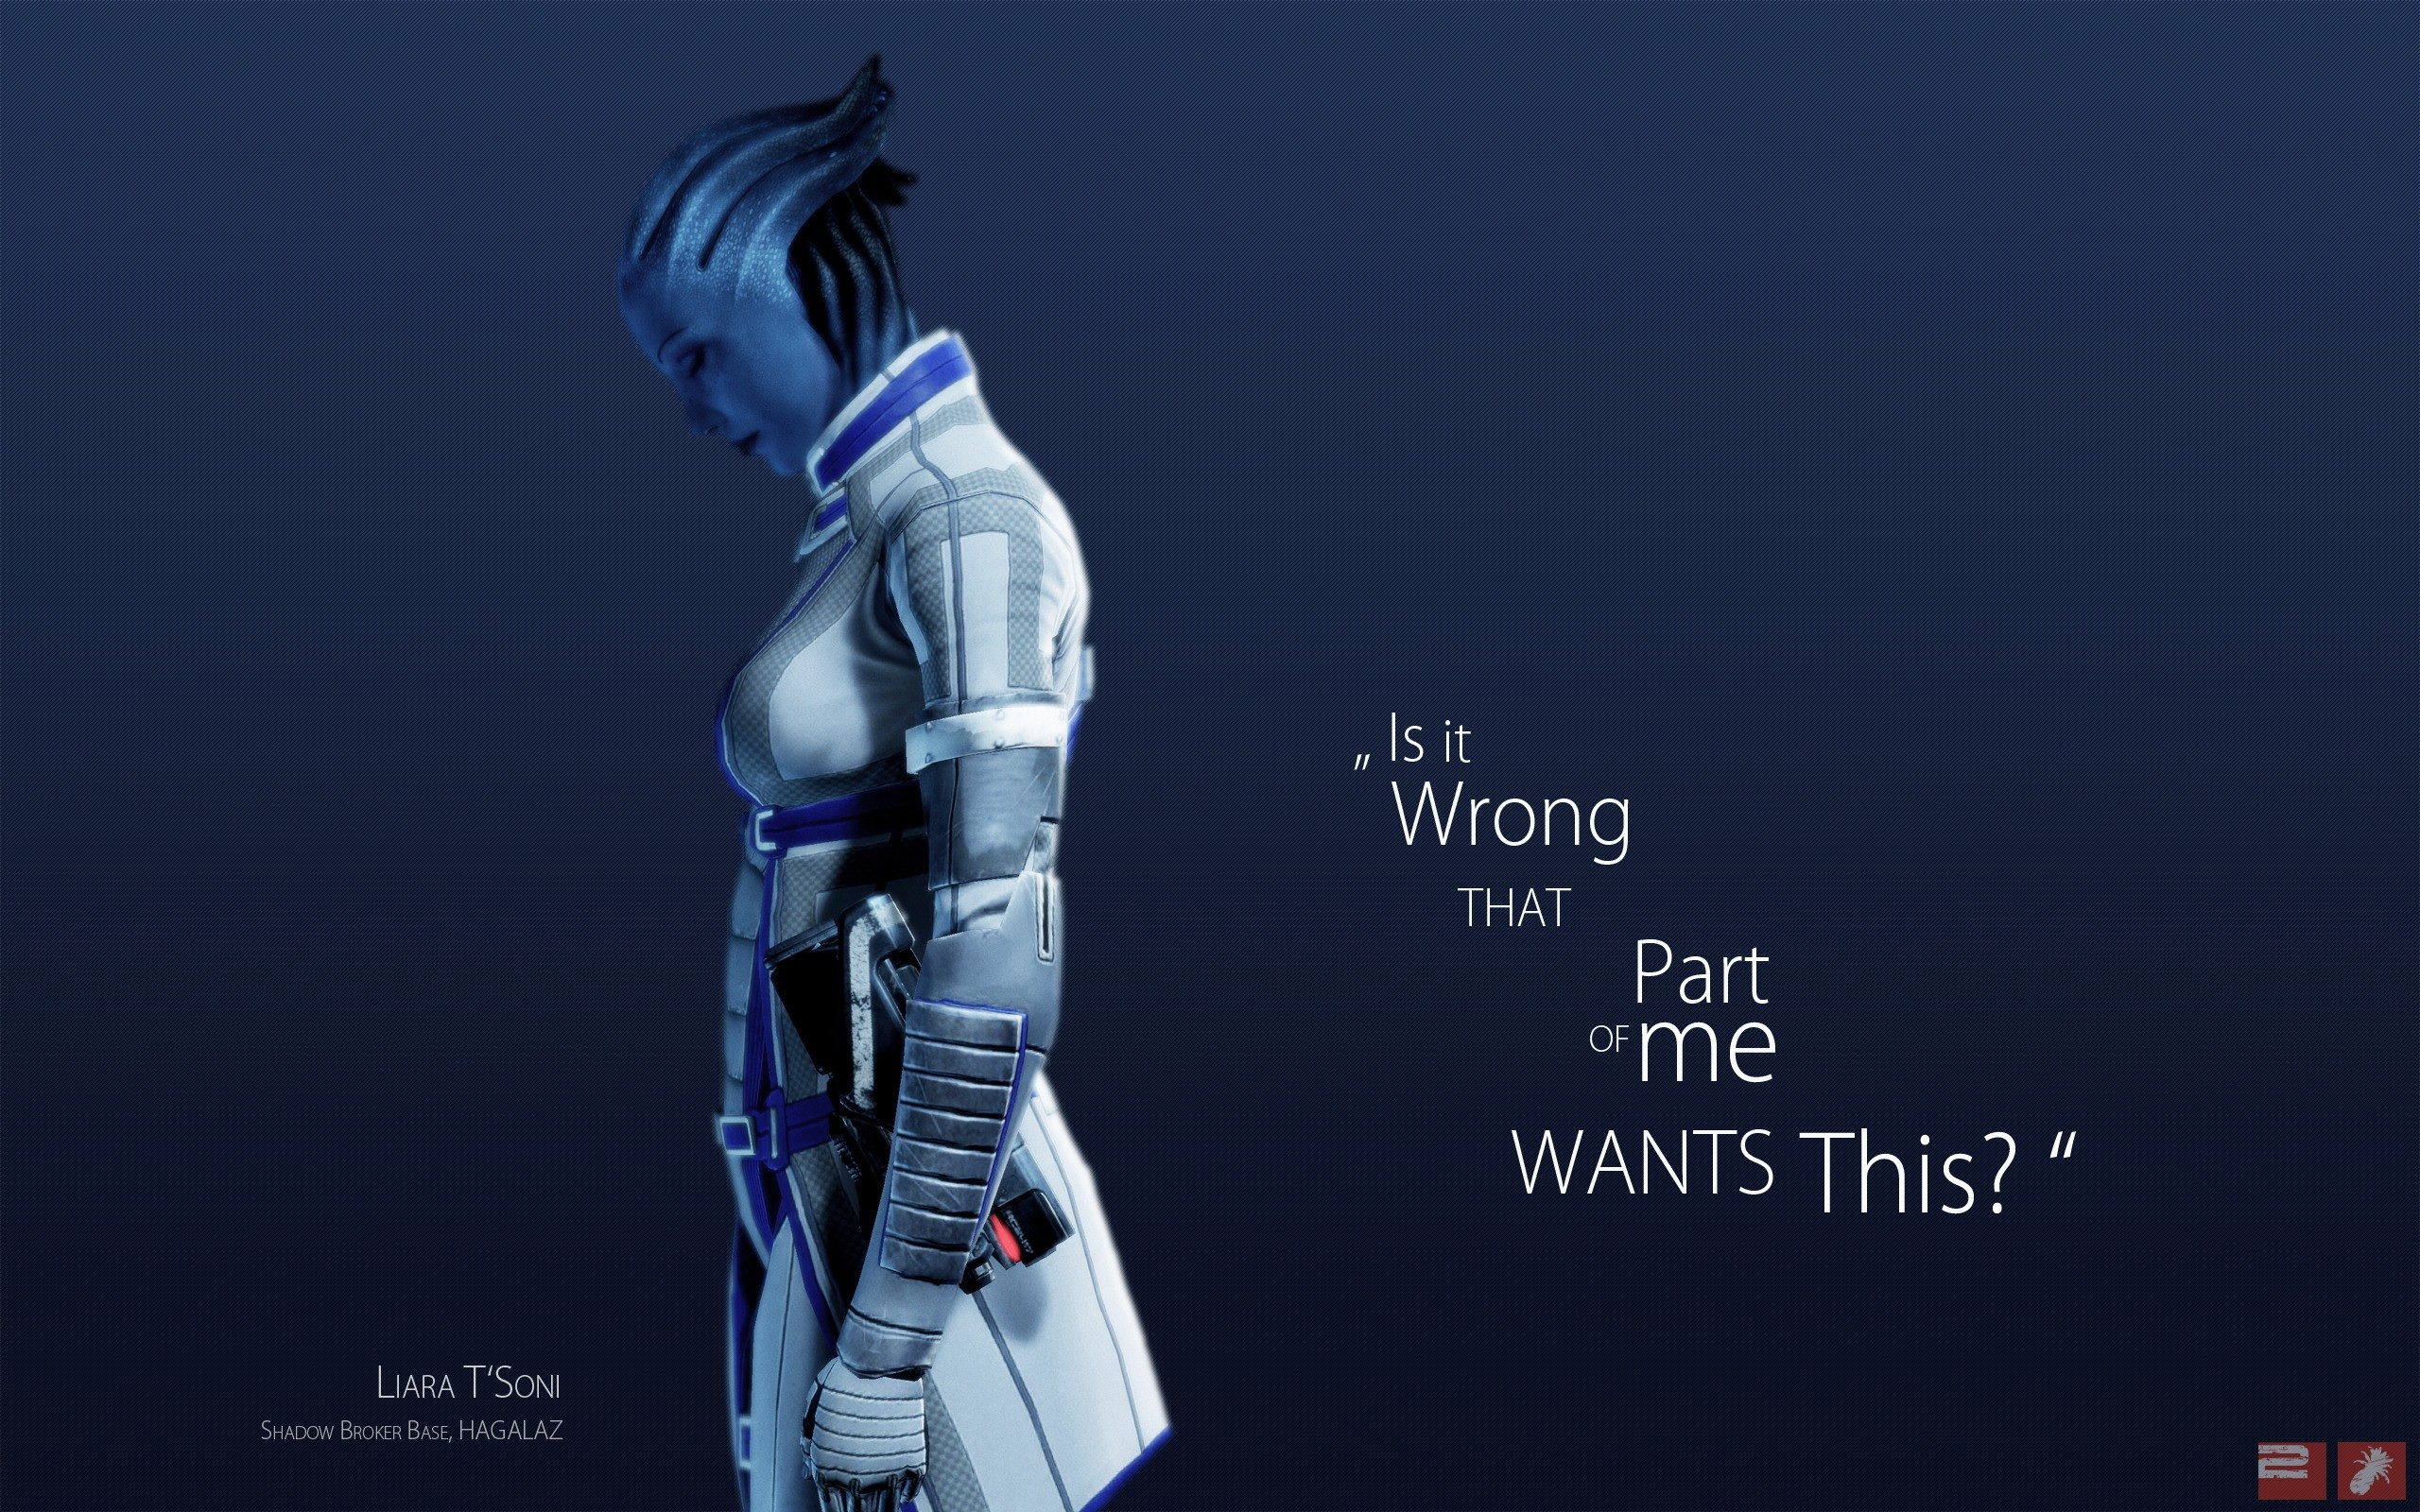 Mass Effect Rp images Dr Liara T'Soni HD wallpaper and background photos